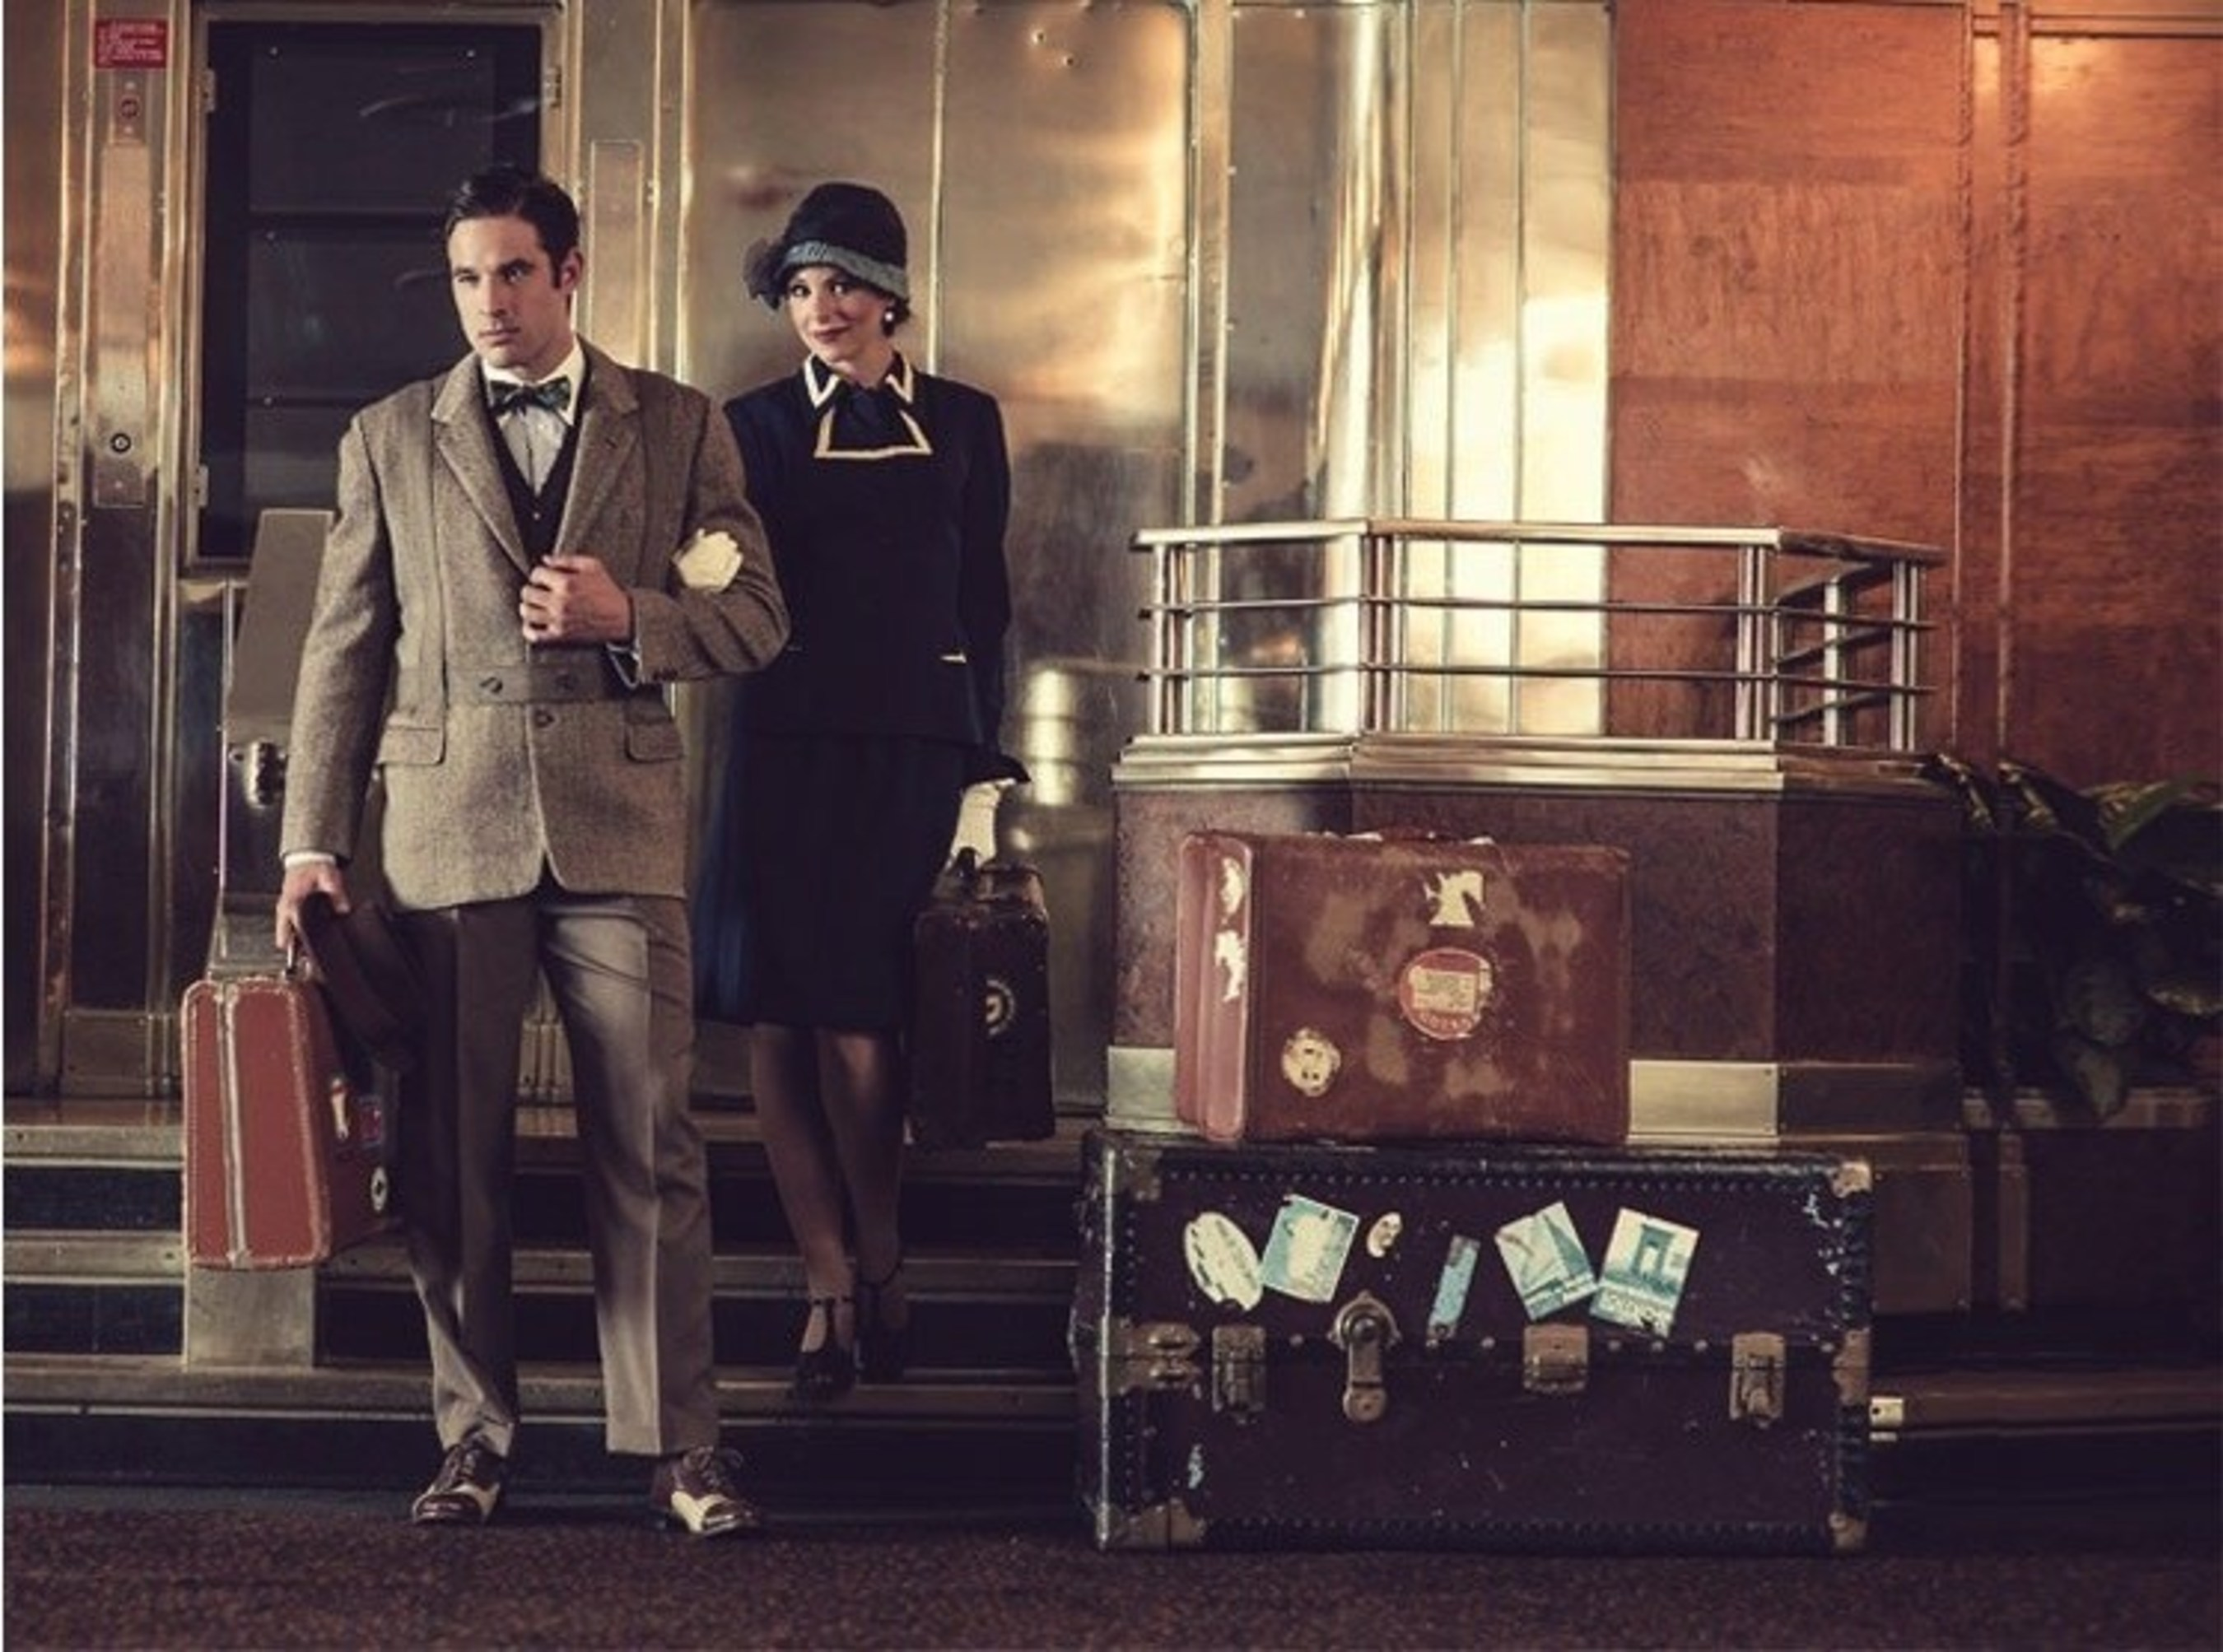 The Art Deco Festival Aboard the Queen Mary returns August 19-21, turning back time to a bygone era of glamour and elegance.